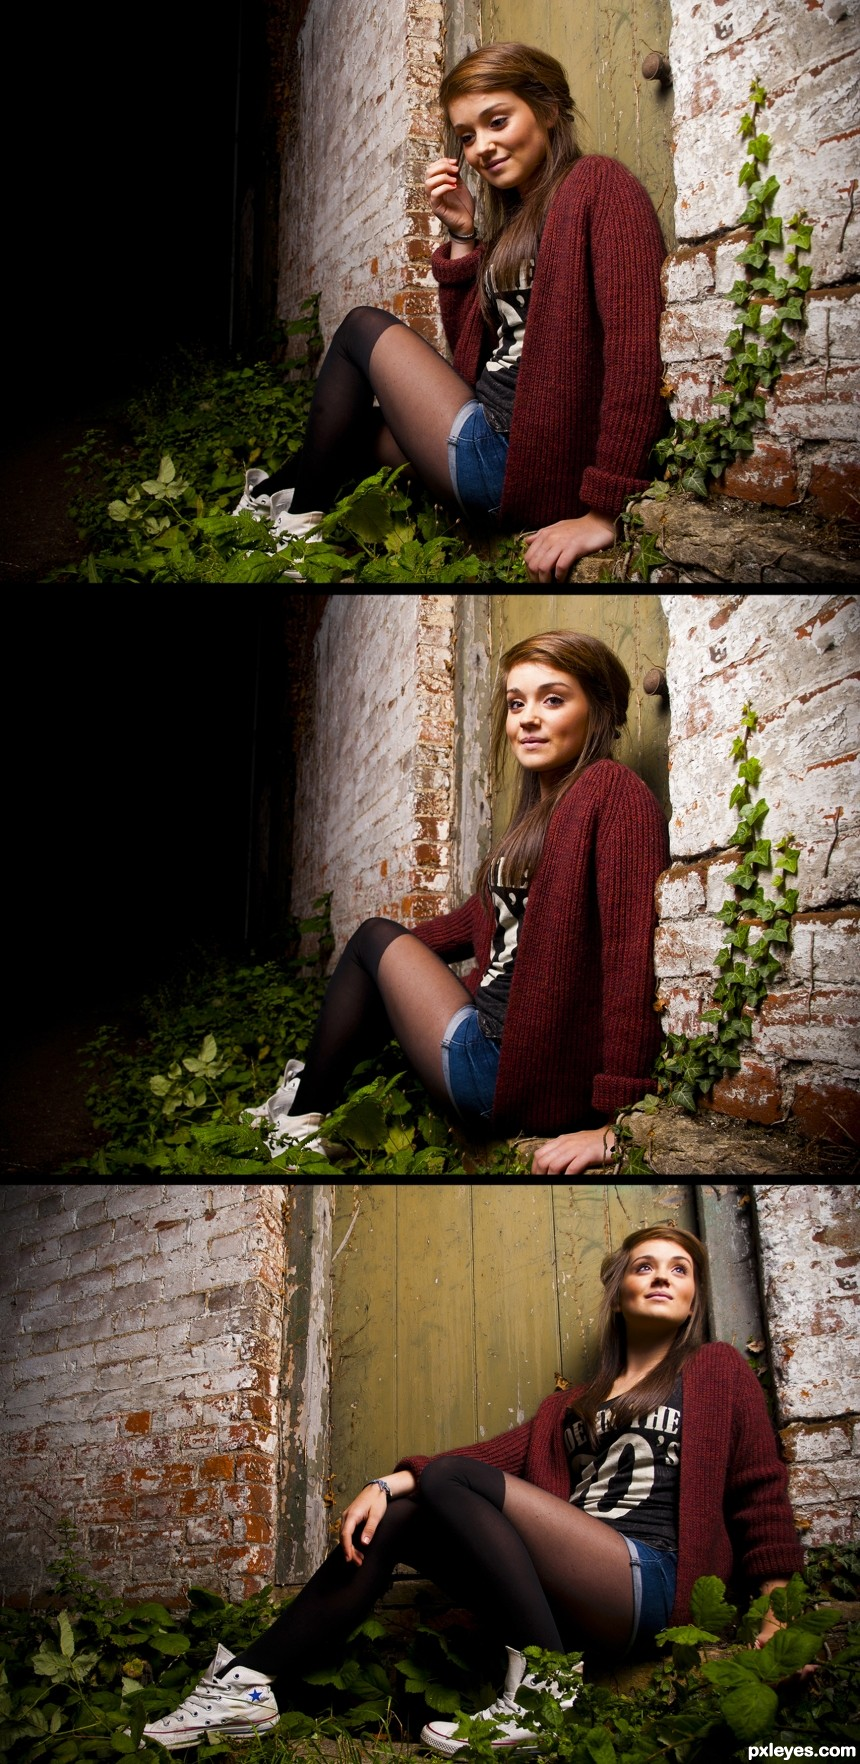 Step by Step photoshop picture)